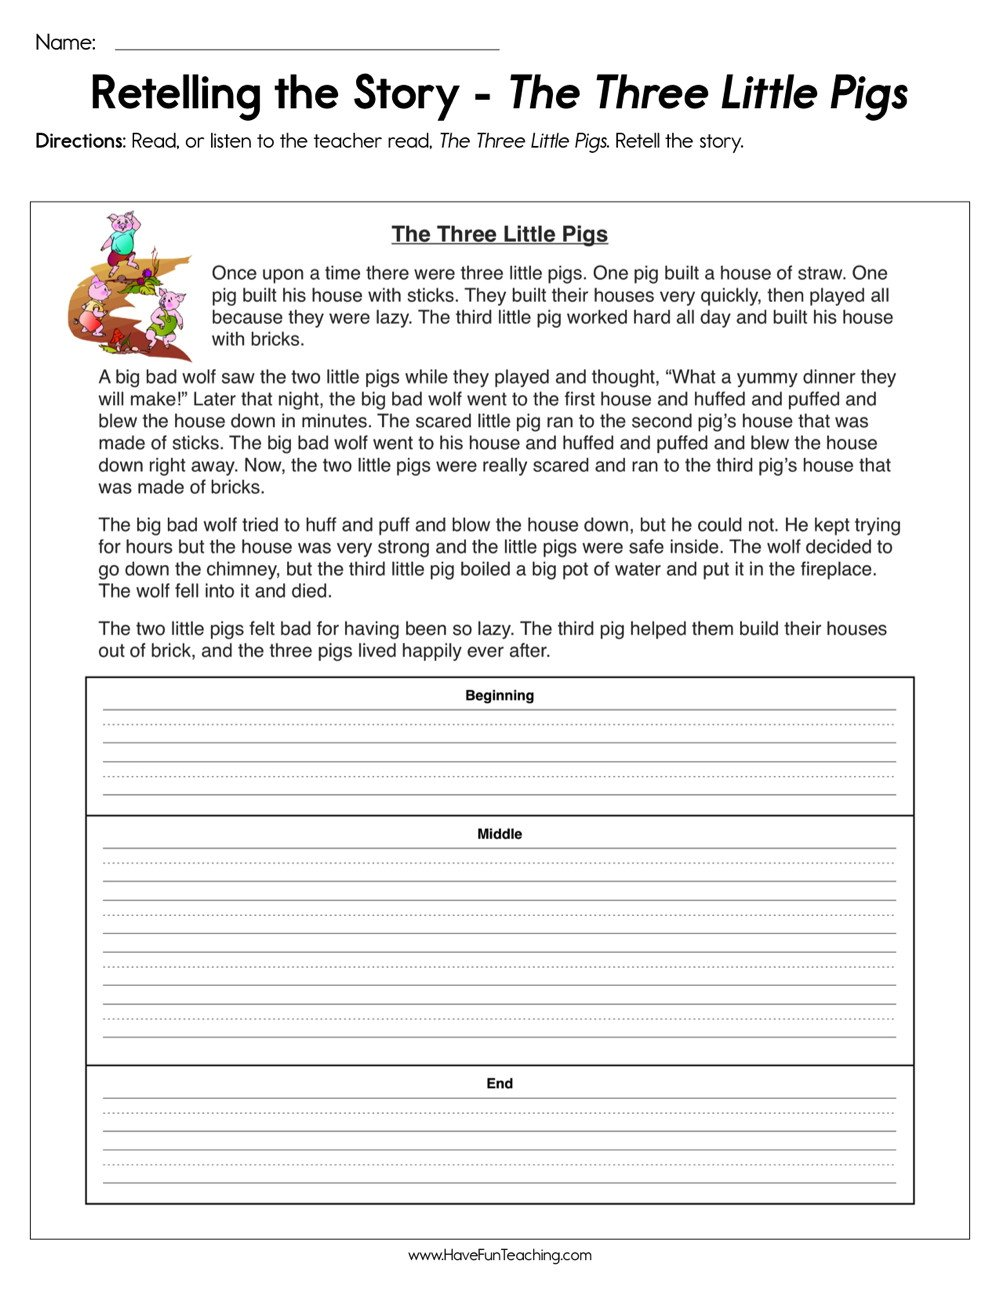 Summarizing Worksheet 4th Grade Retelling the Story the Three Little Pigs Worksheet